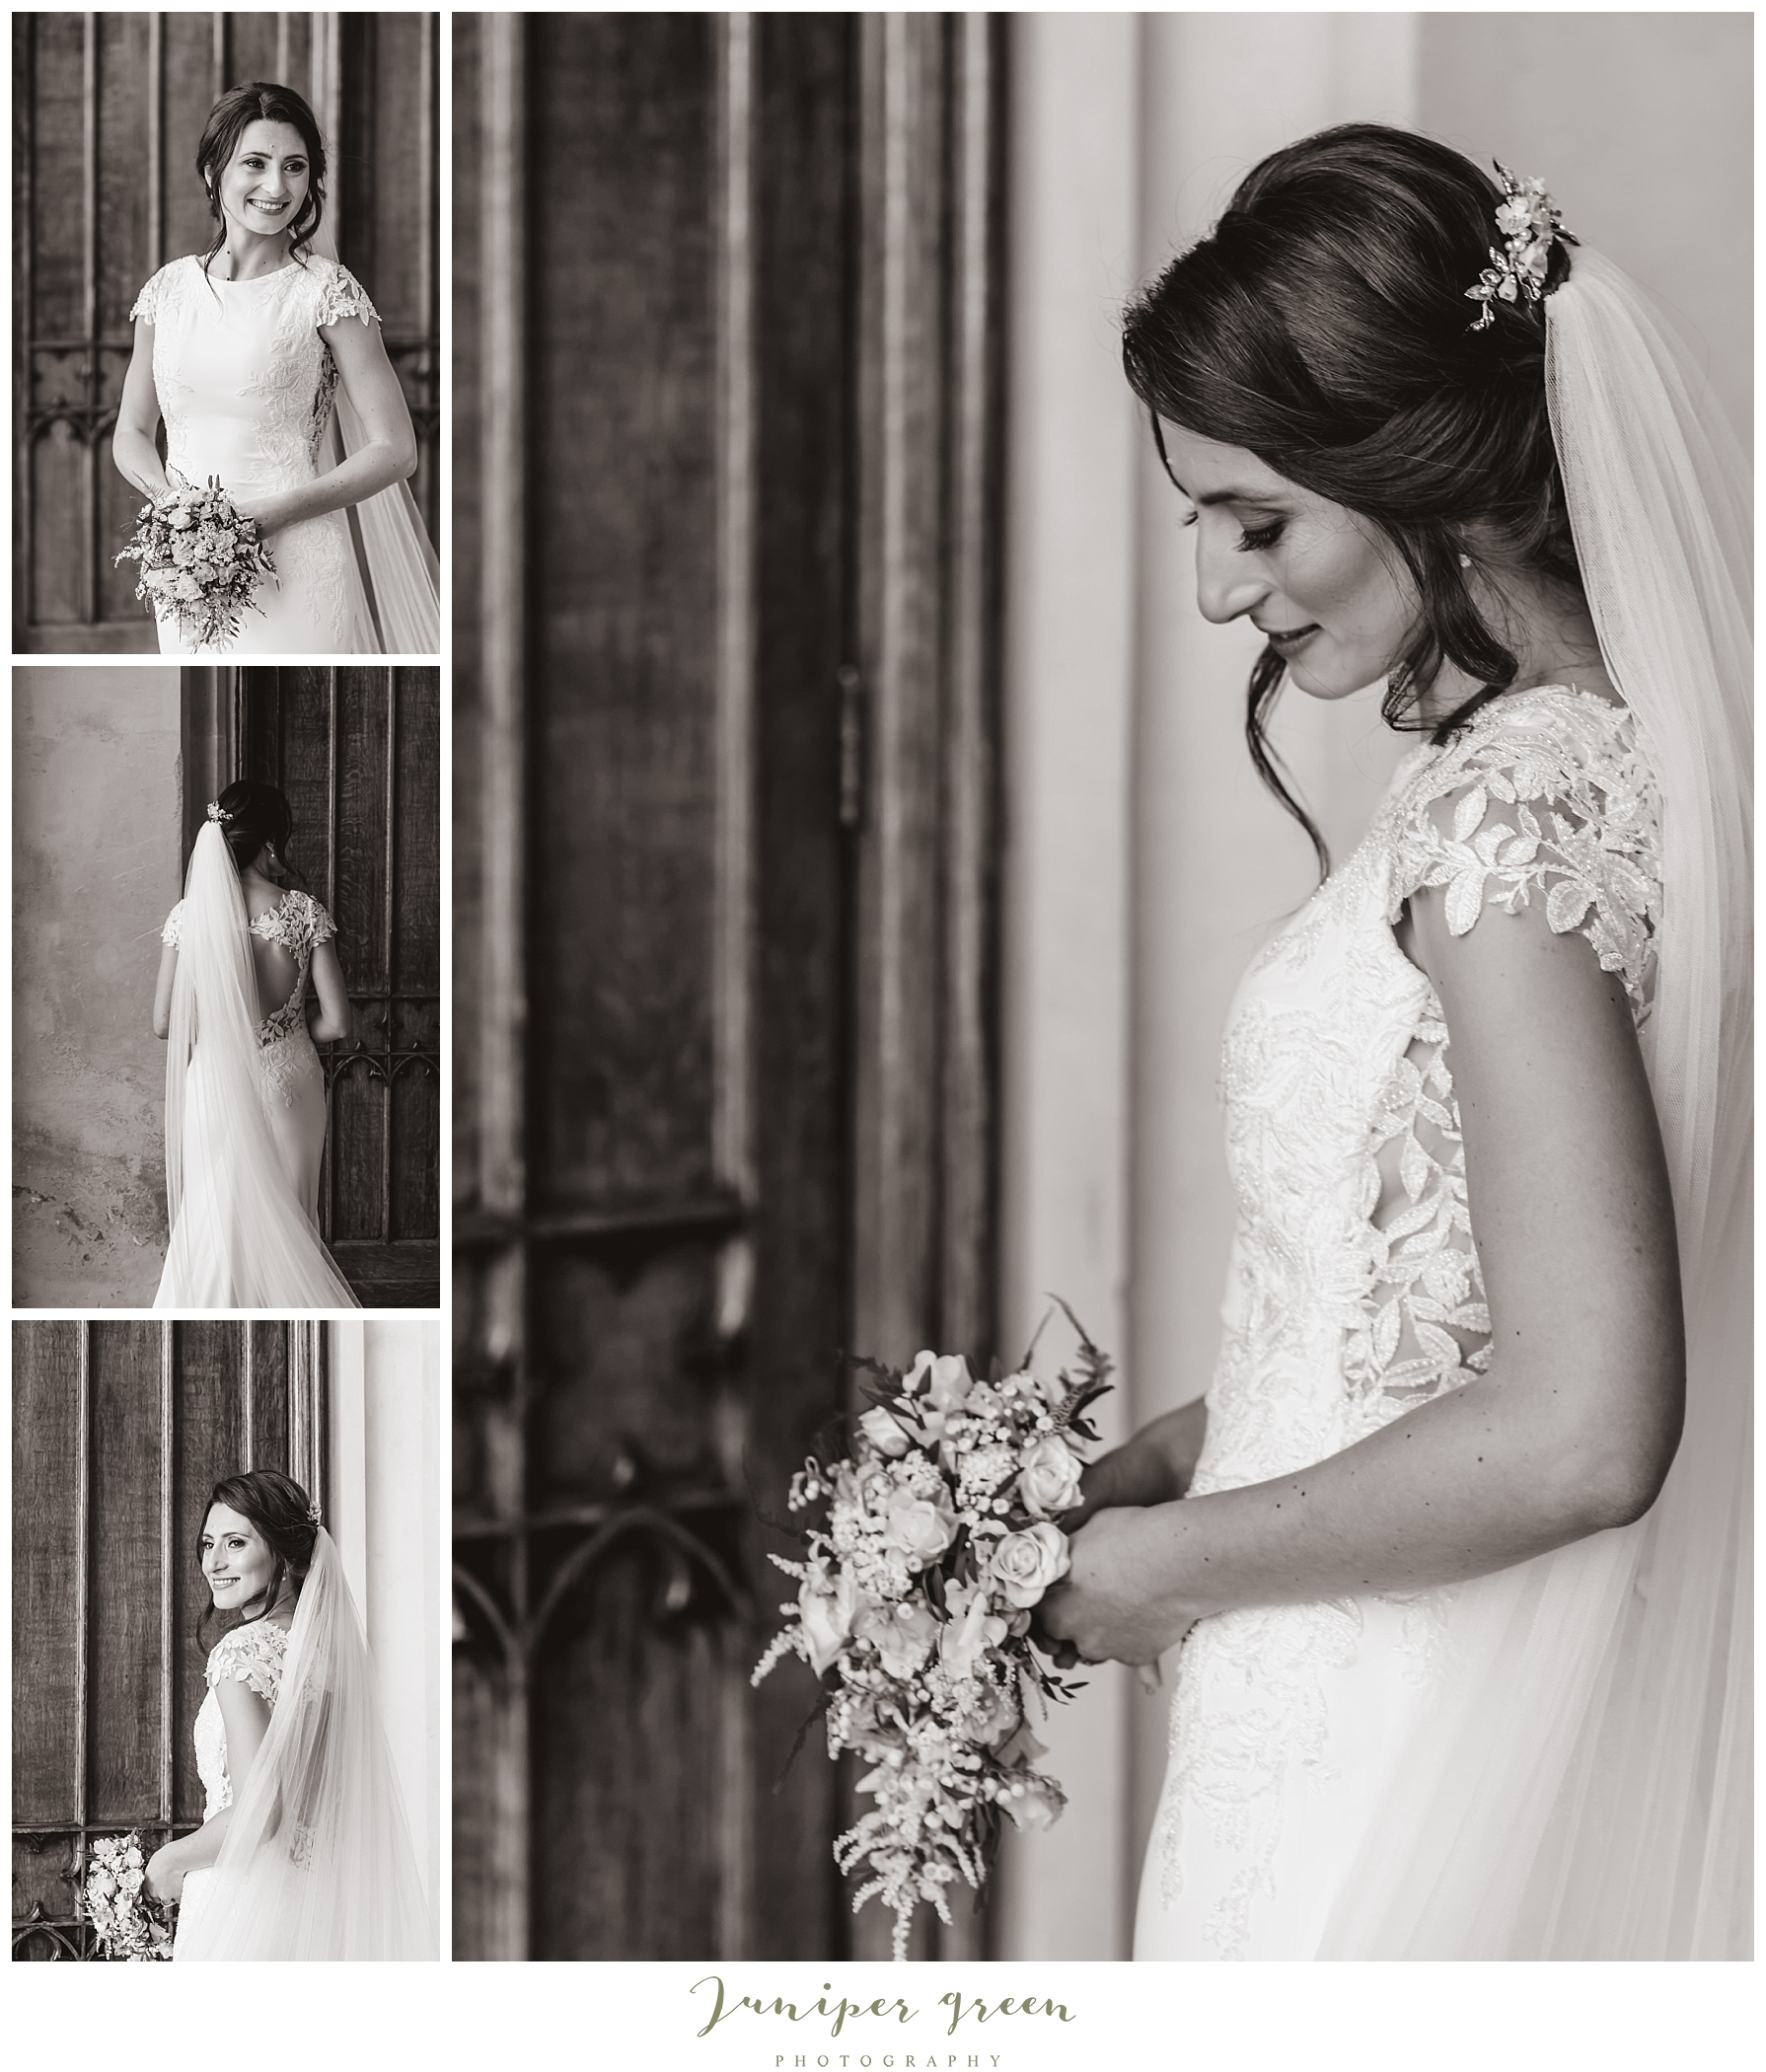 Bridal Portraits at Ashridge House